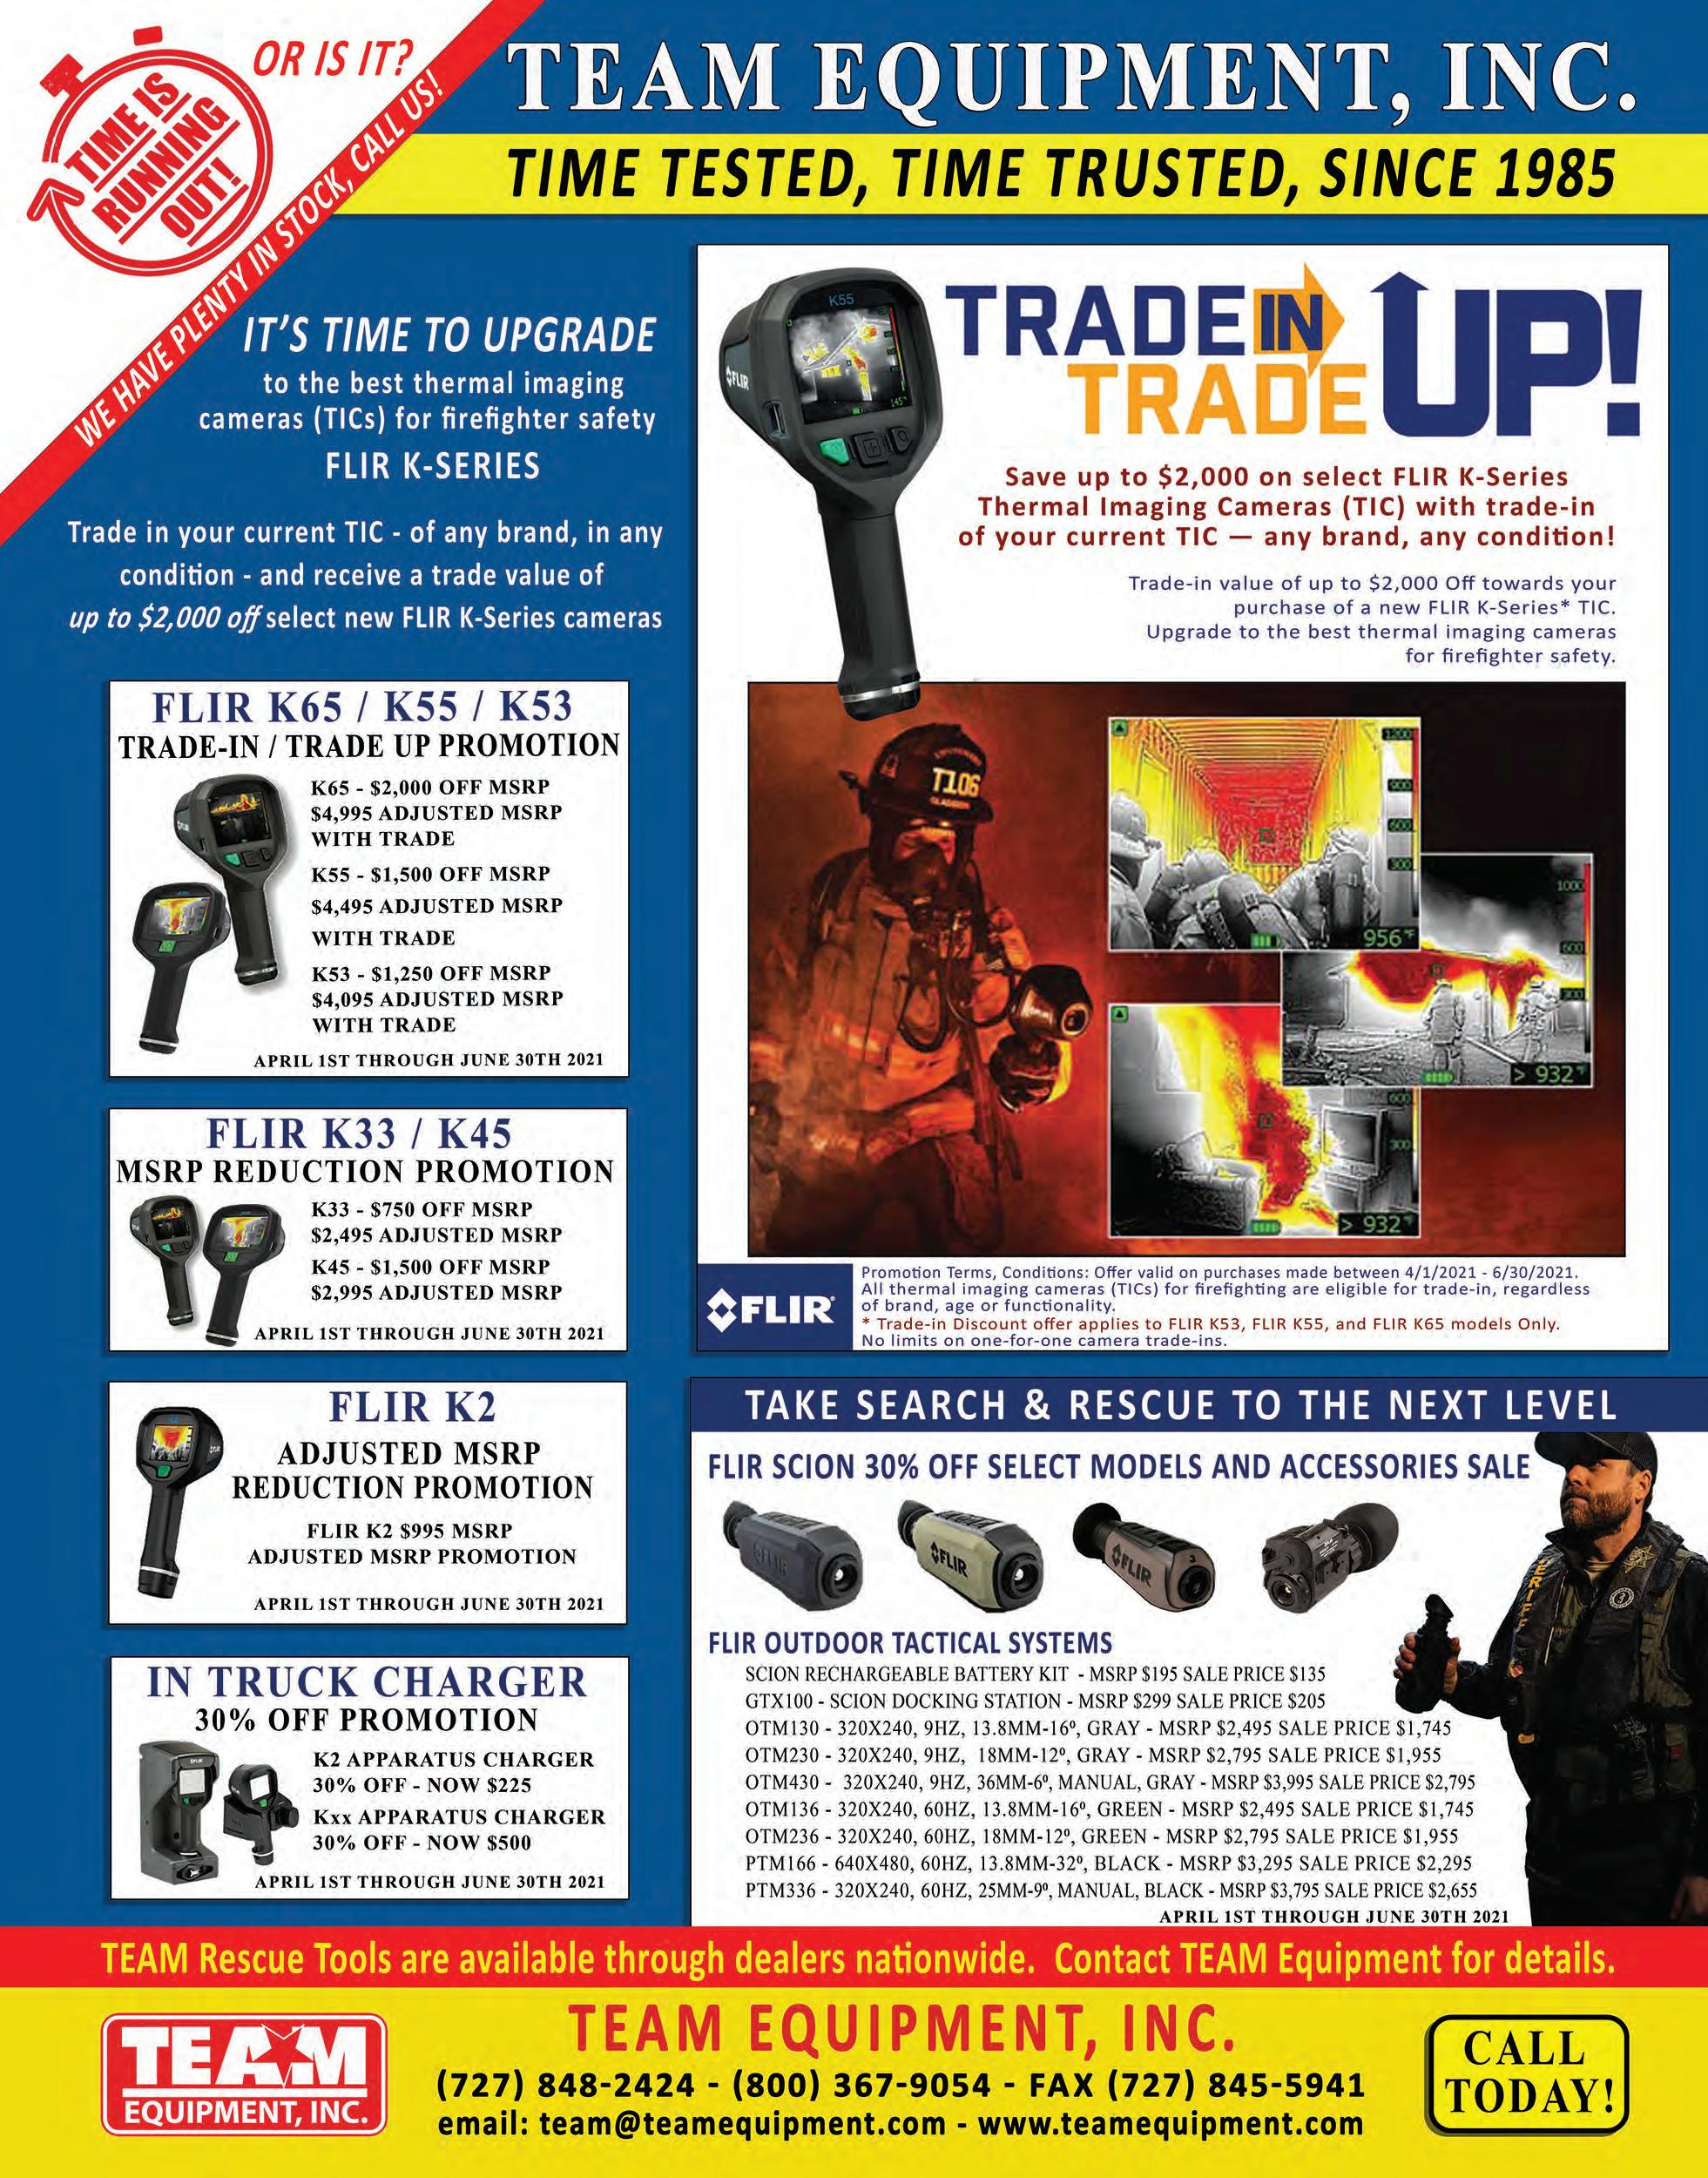 Page 12 of Team Equipment, Inc